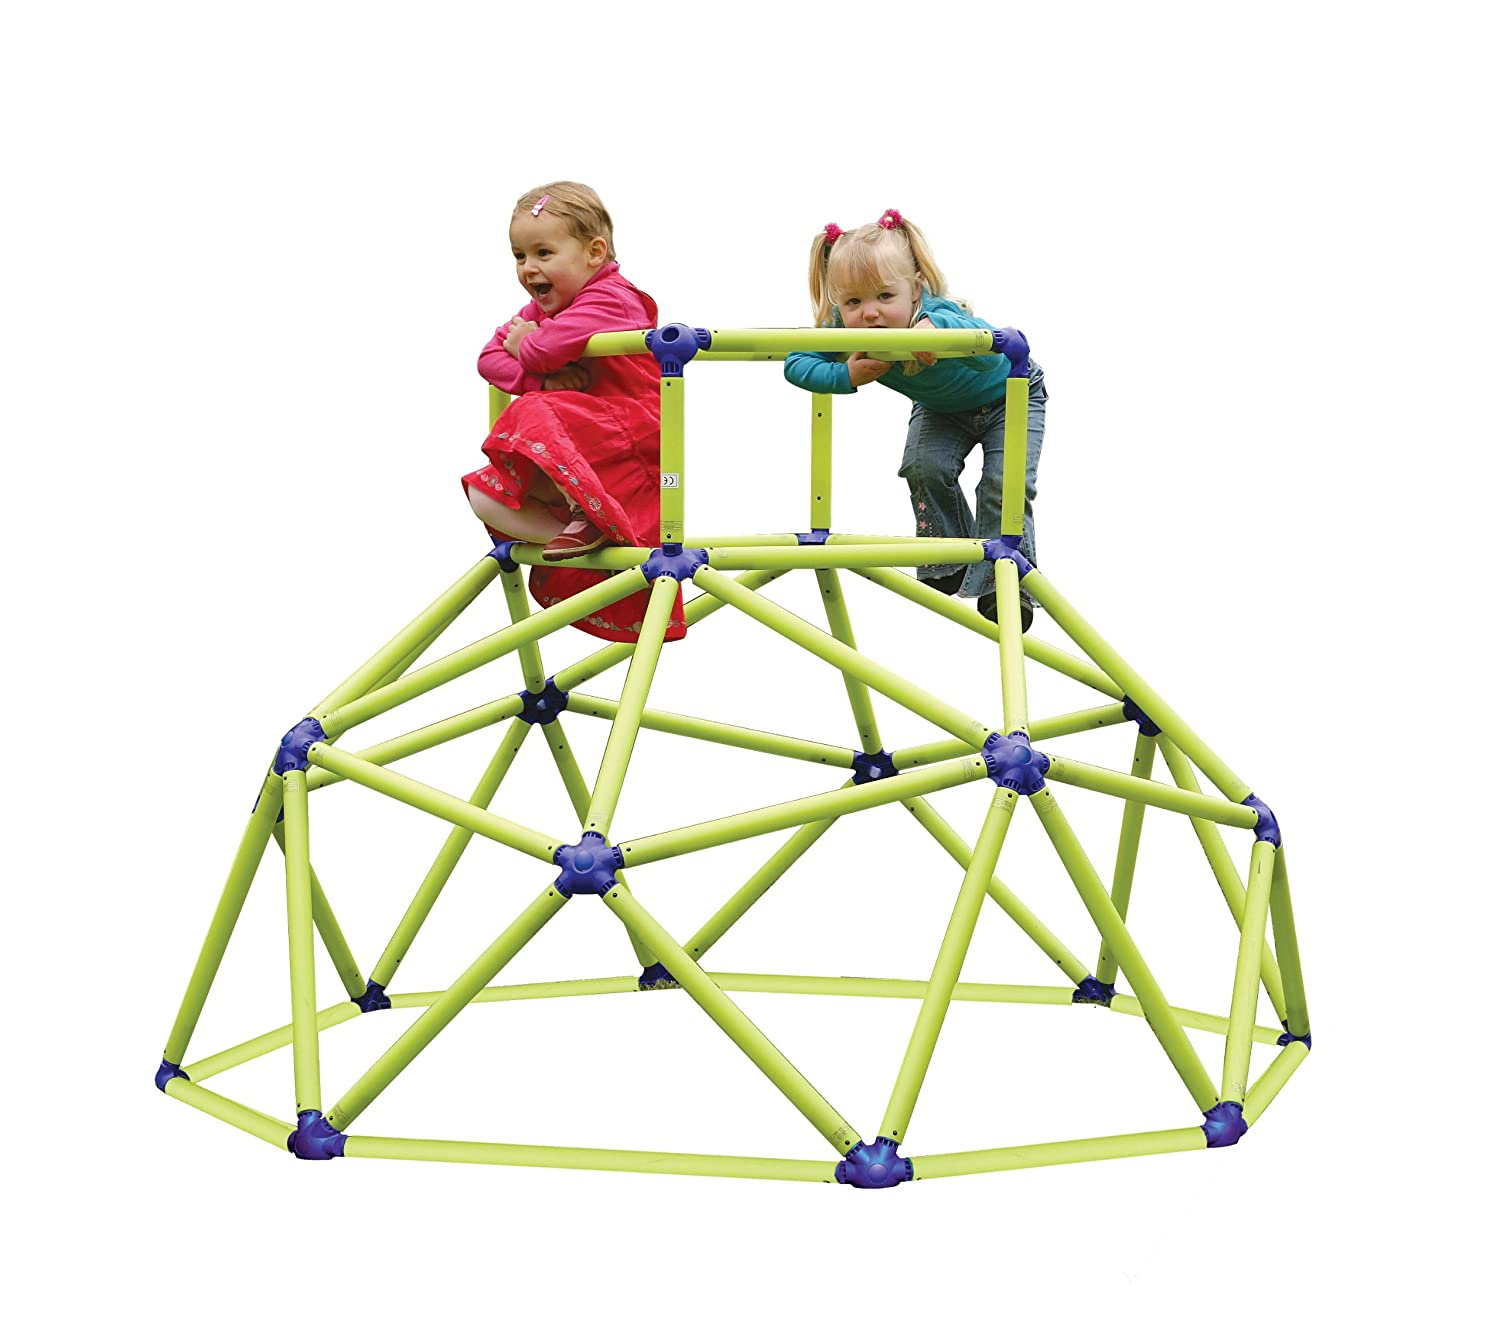 Eezy Peezy Monkey Bars Climbing Tower - Active Outdoor Fun for Kids Ages 3 to 8 Years Old